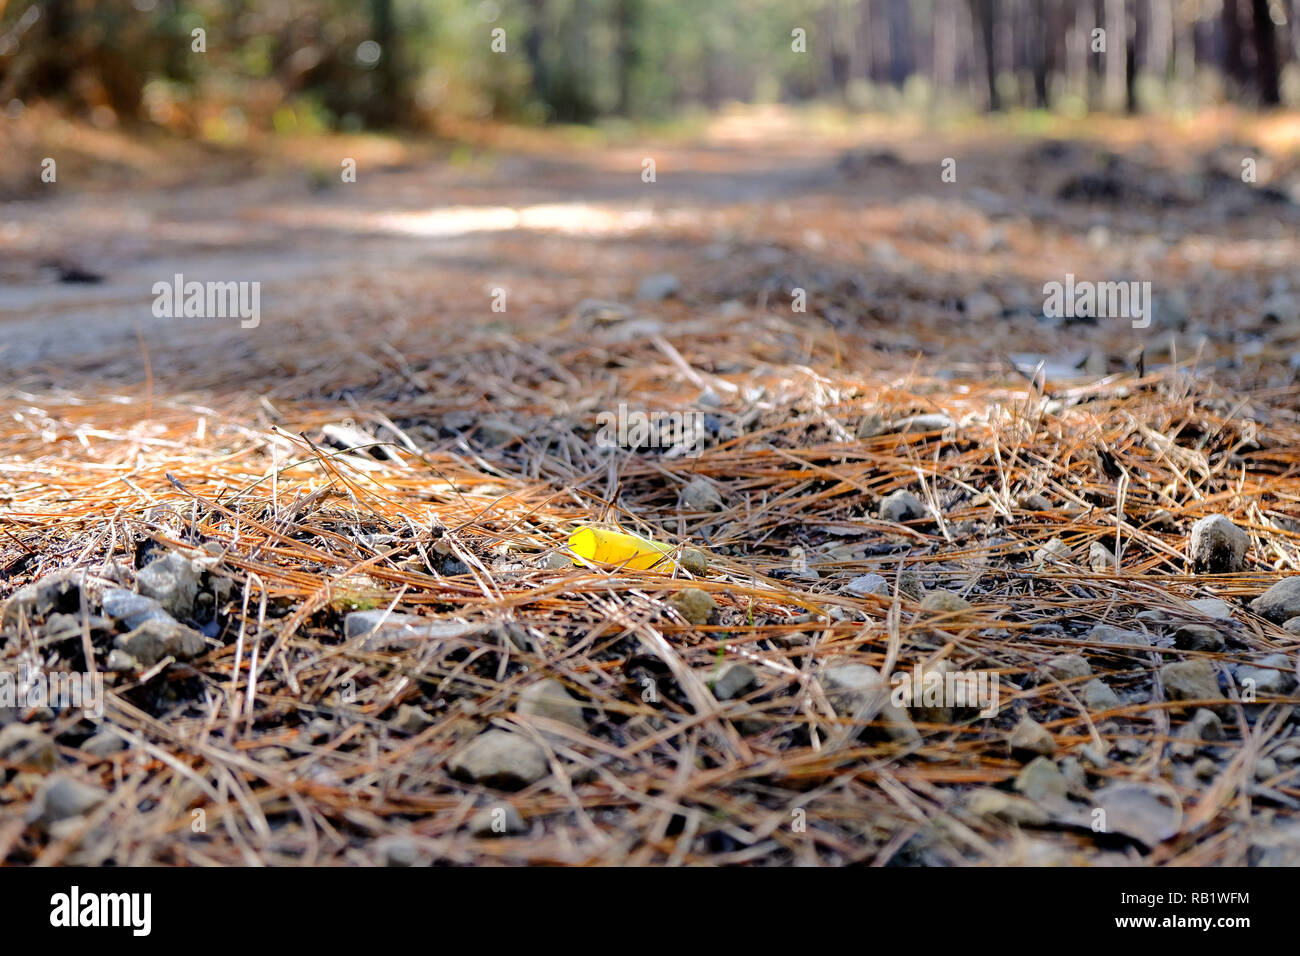 Empty fired 12-gauge shotgun shell on the ground with dry pine needles at the Sam Houston National Forest in Texas, USA. - Stock Image